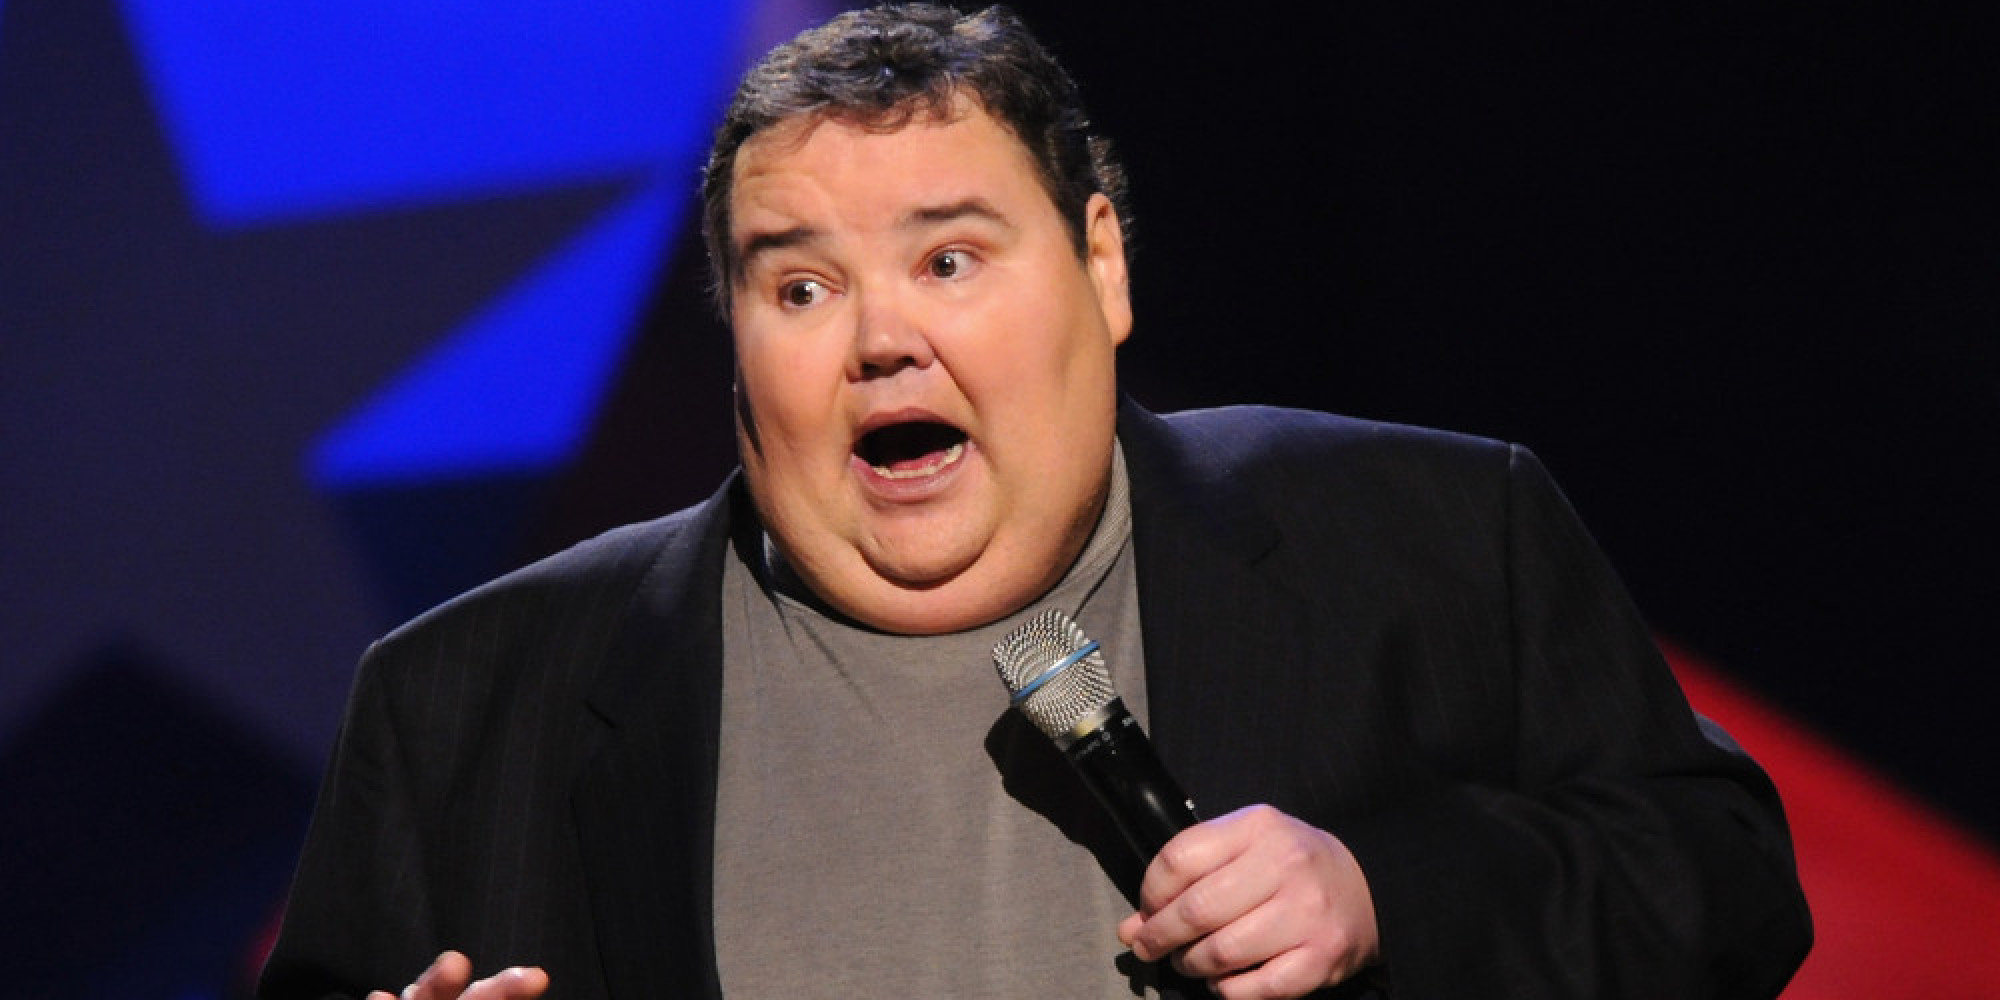 John Pinette Dead Comedian And Seinfeld Actor Dies At